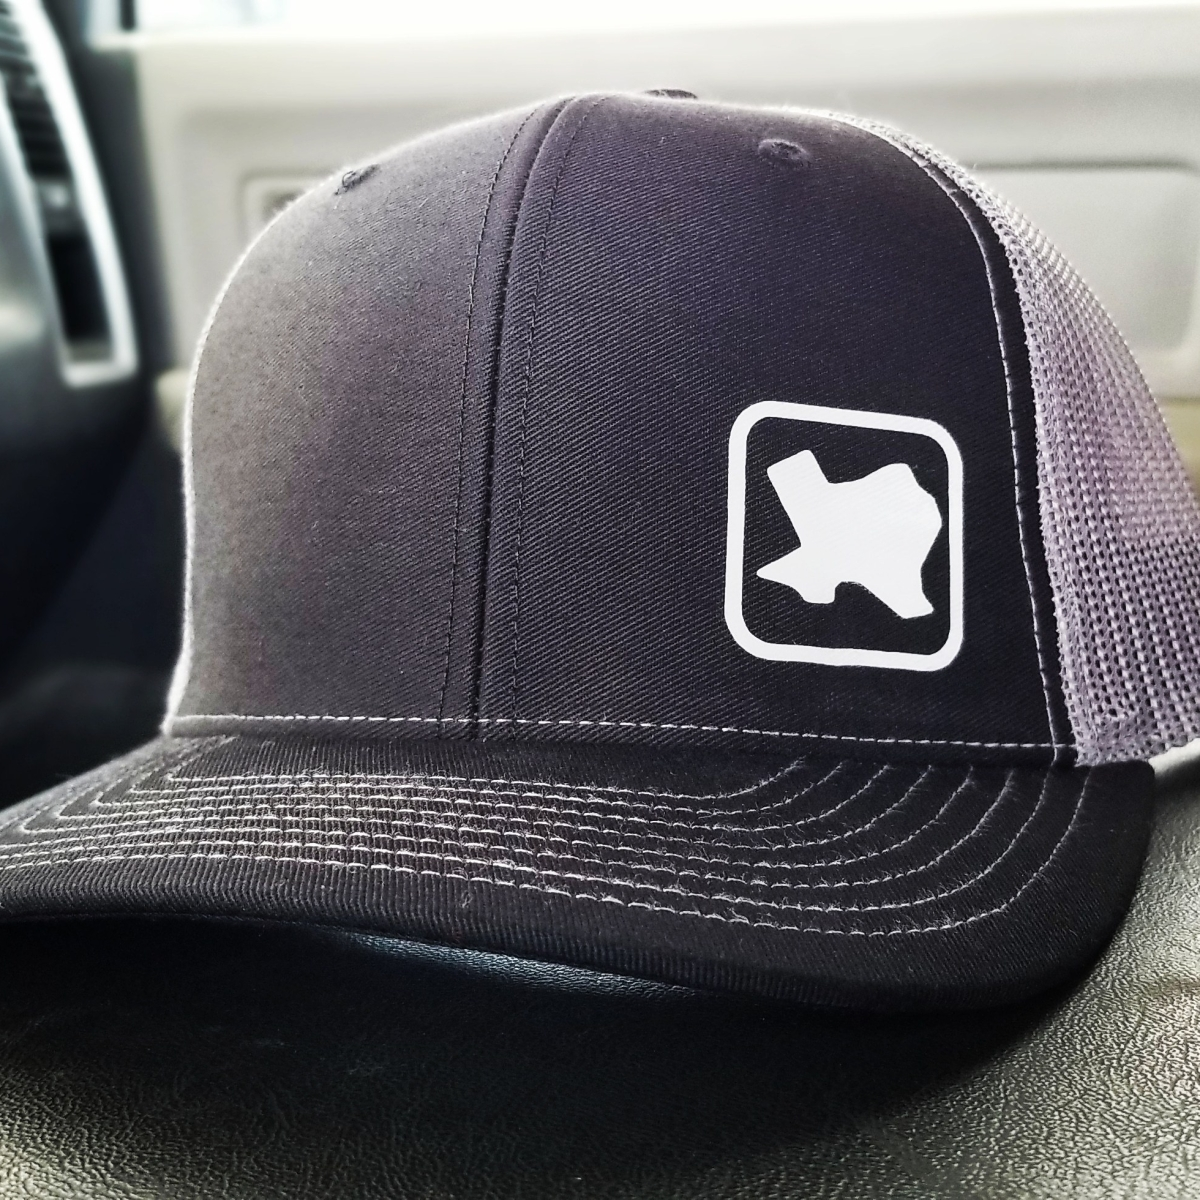 Black & Gray Texas Peeps Cap